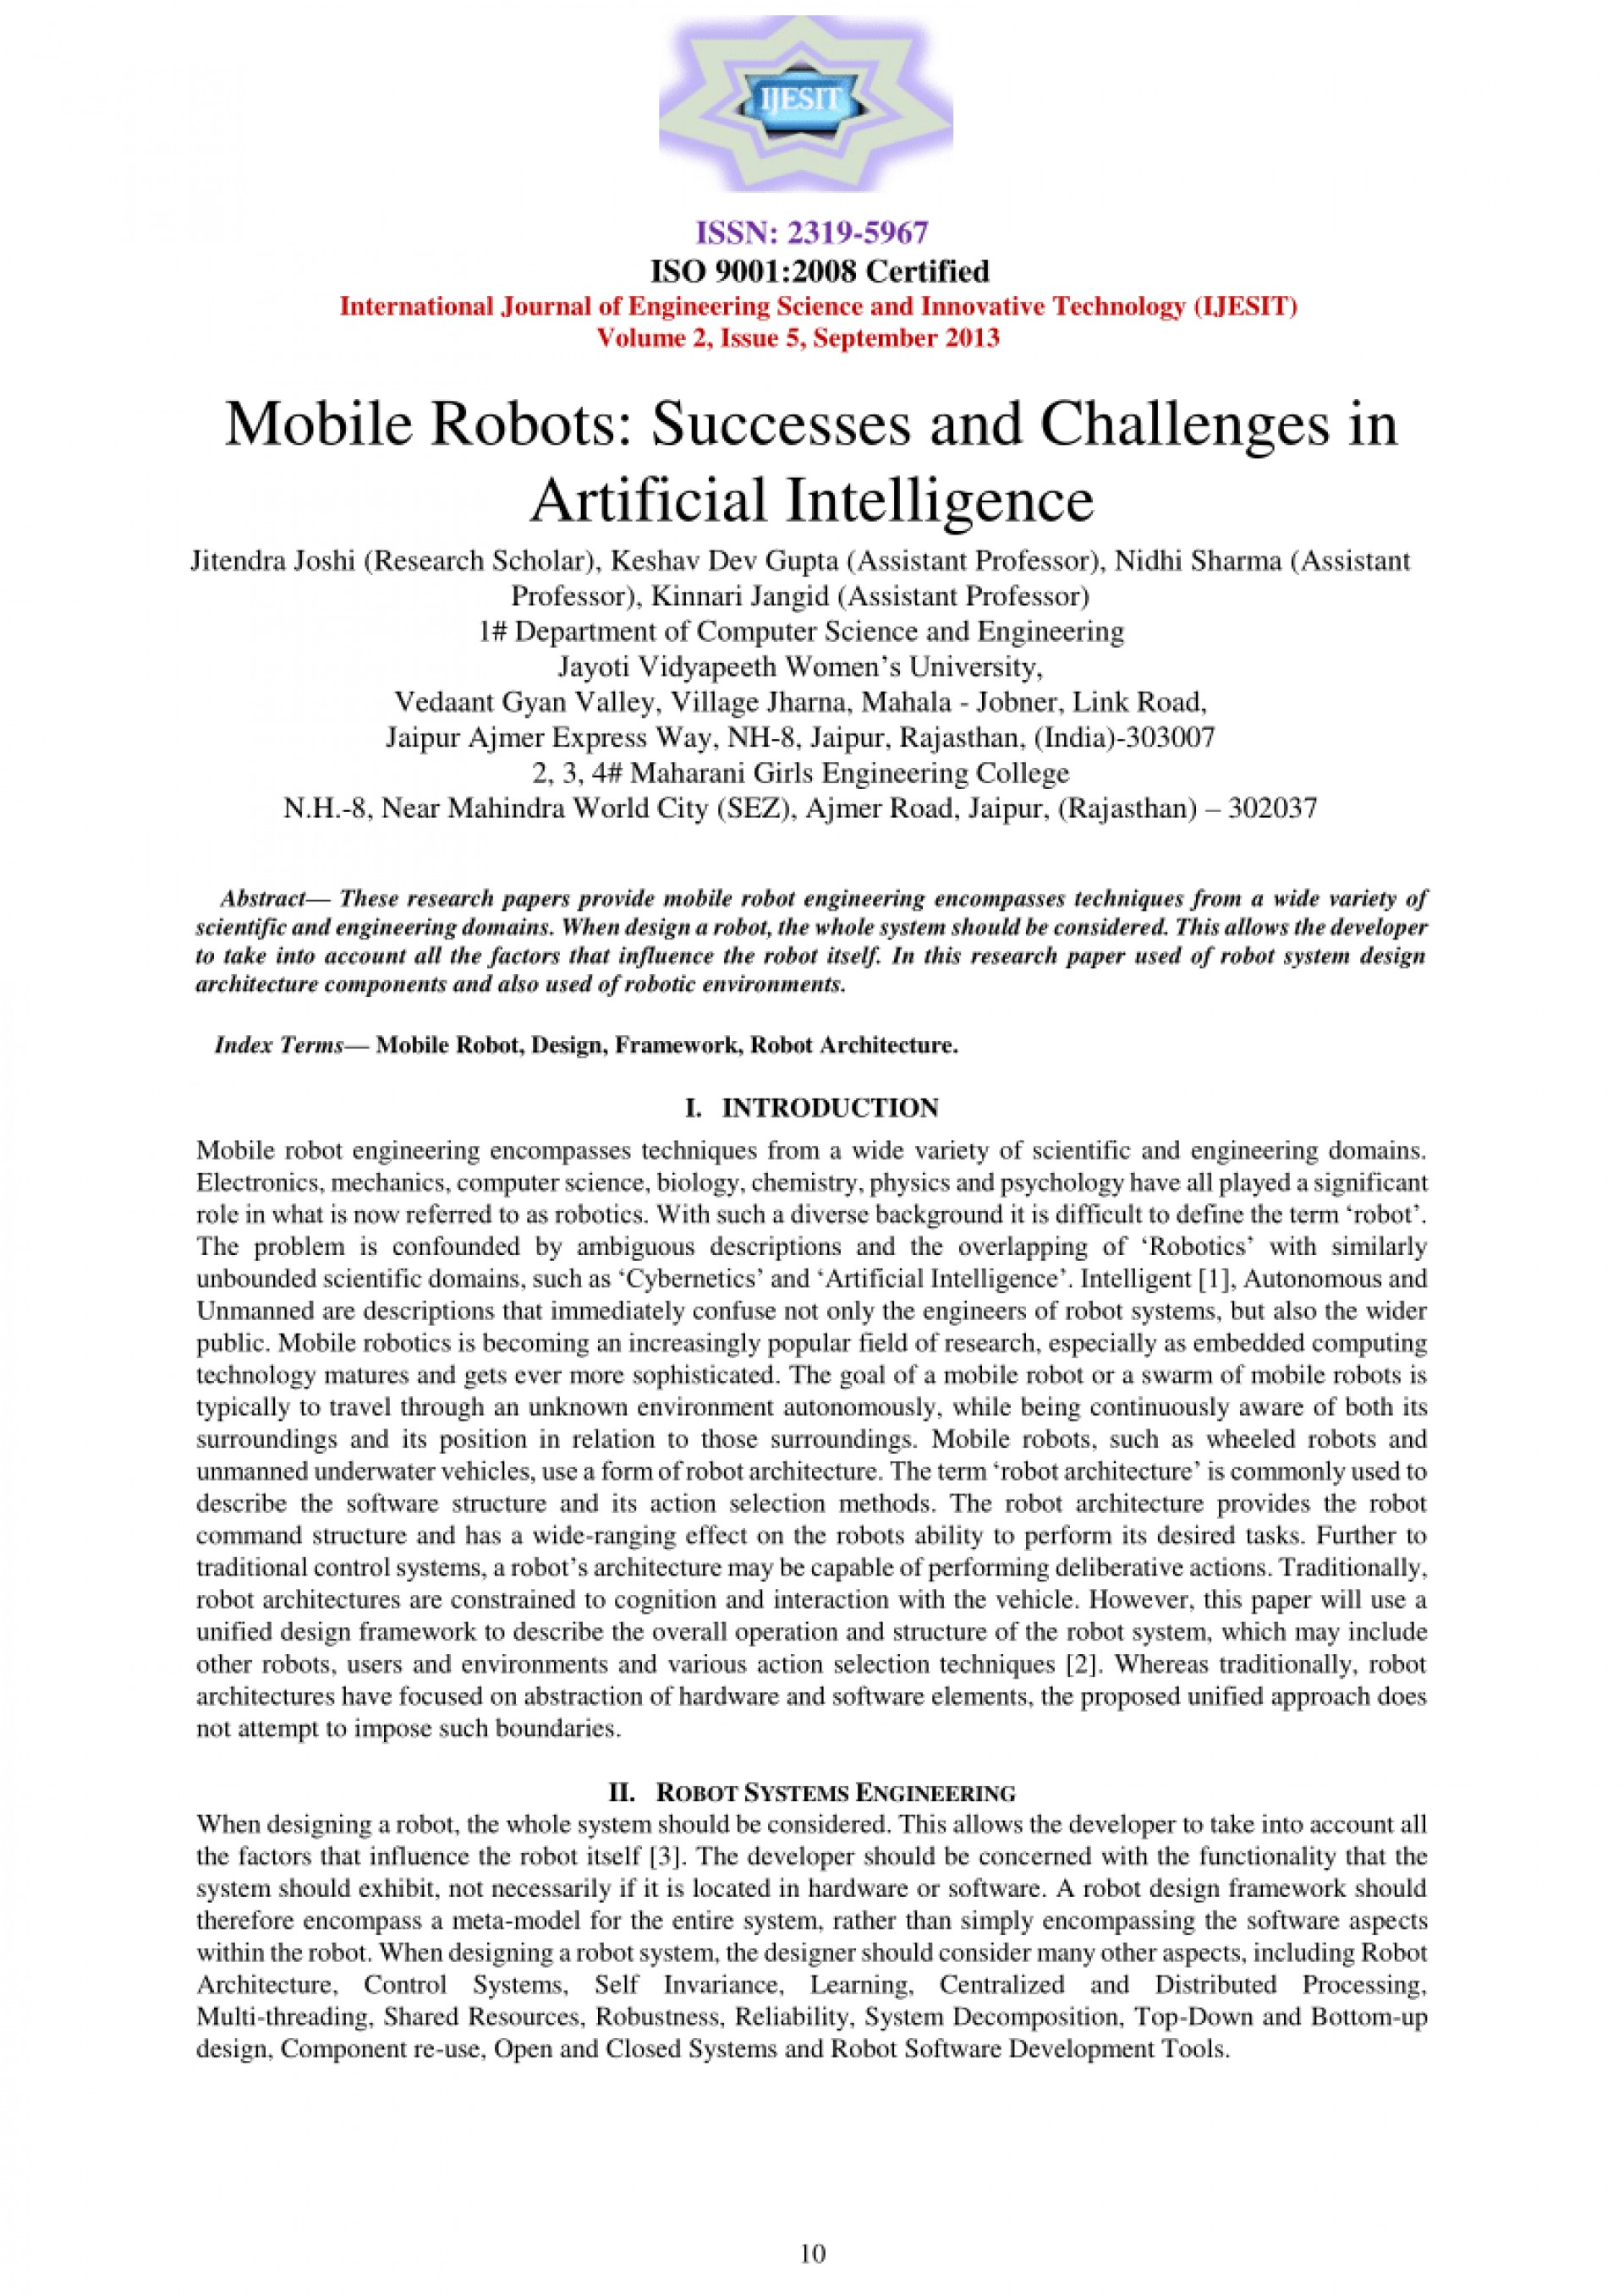 007 Research Paper Papers Artificial Intelligence Imposing On In Marketing Ieee Pdf 1920